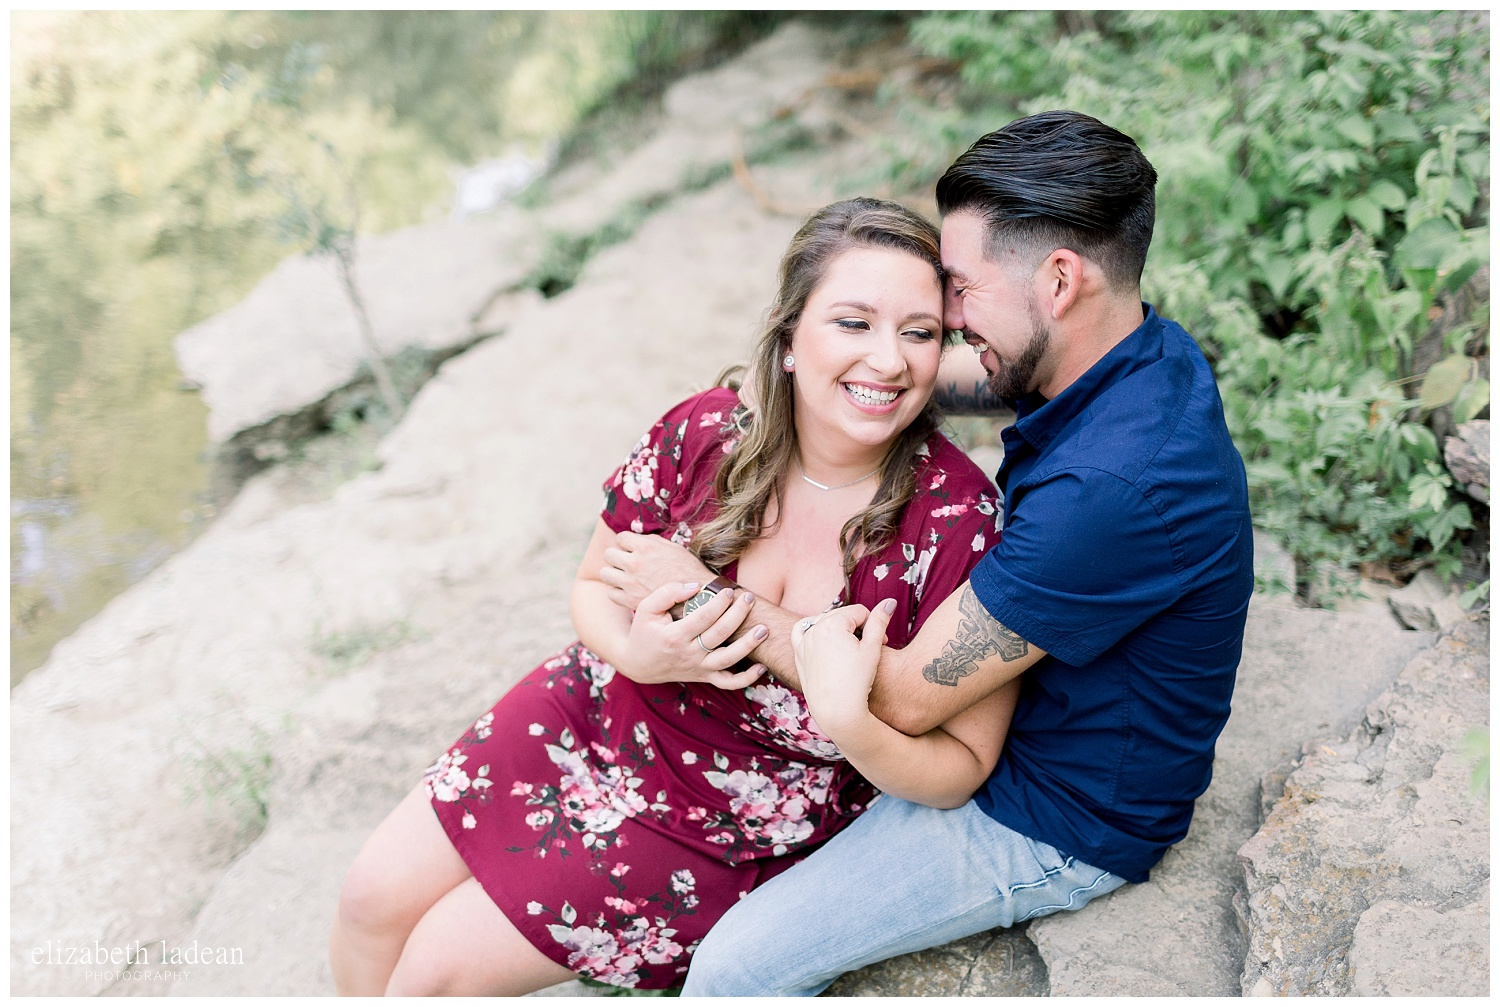 adventurous-engagement-photography-kansas-city-J+R2018-elizabeth-ladean-photography-photo-_9510.jpg